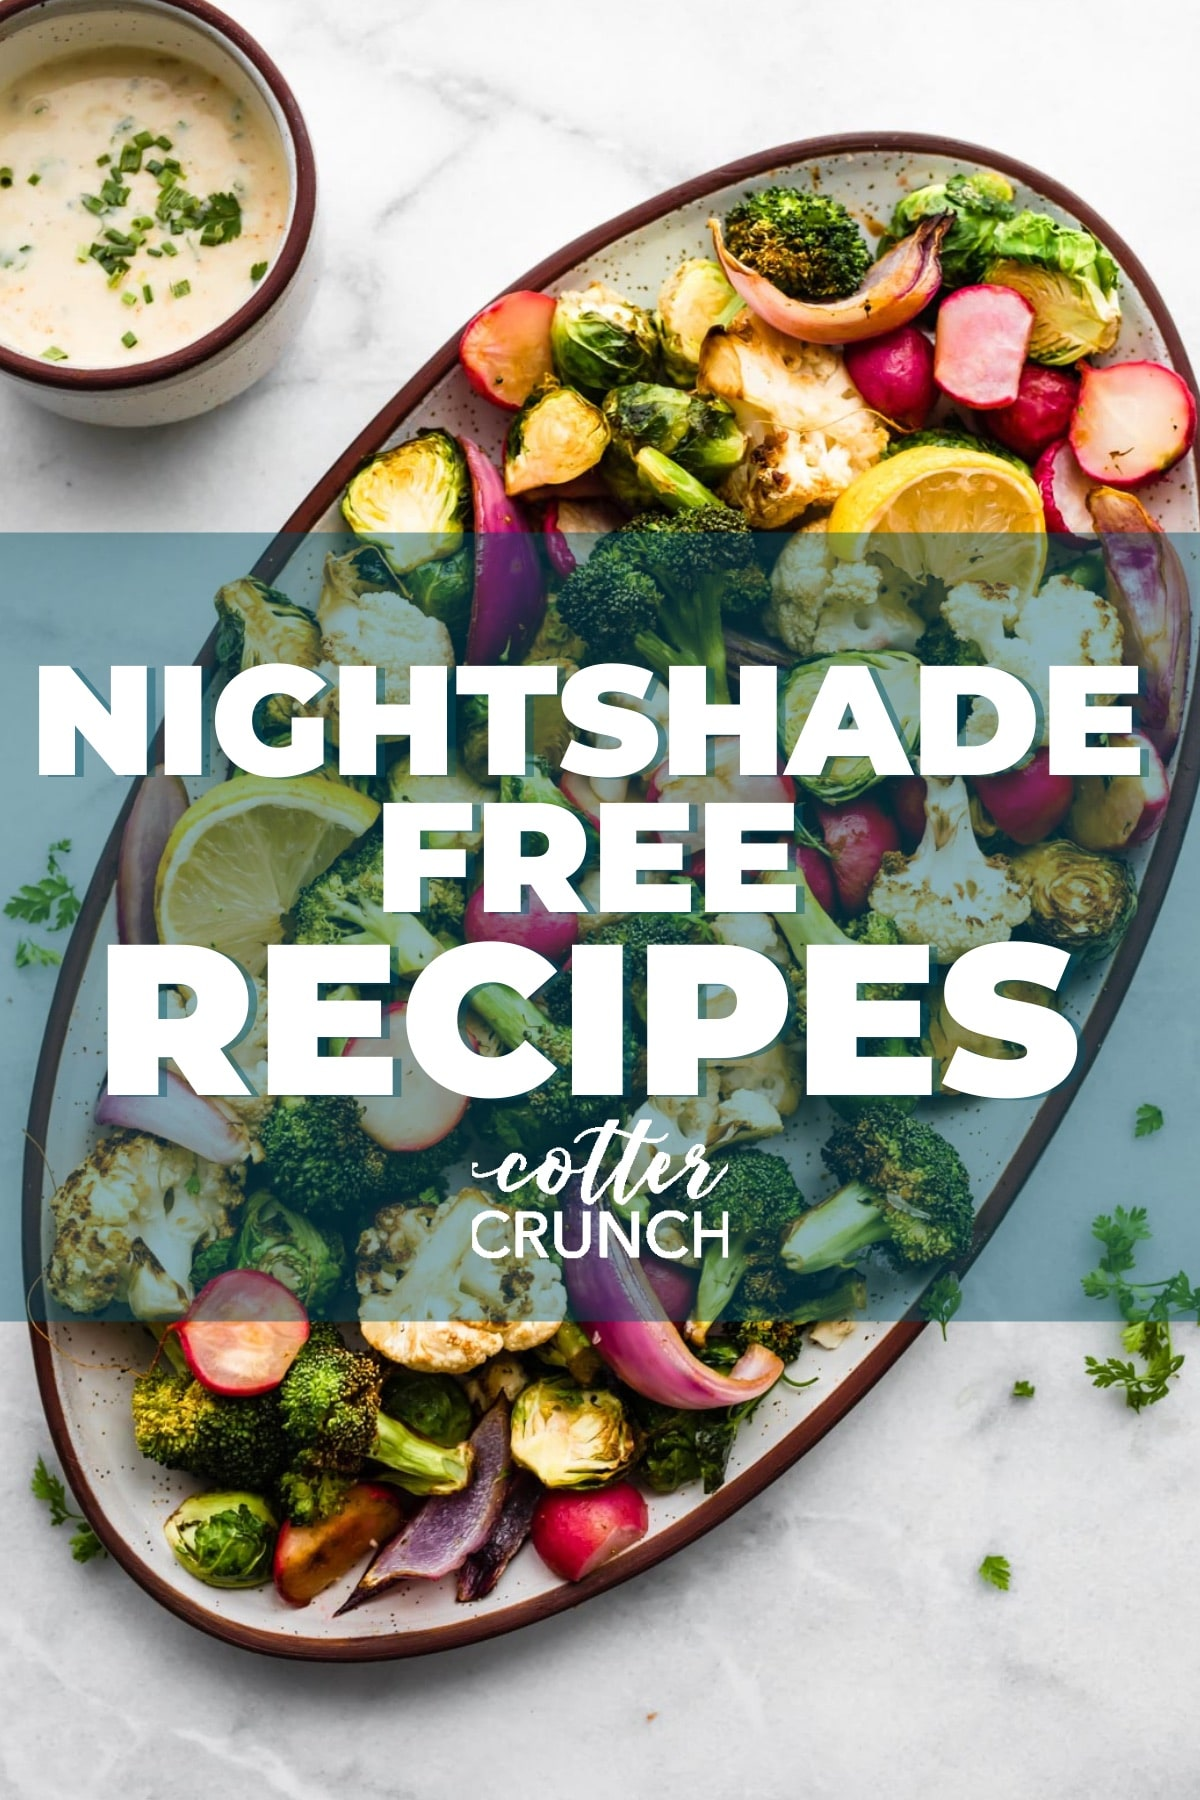 titled image: Nightshade Free Recipes (shown is a platter with assortment of roasted vegetables